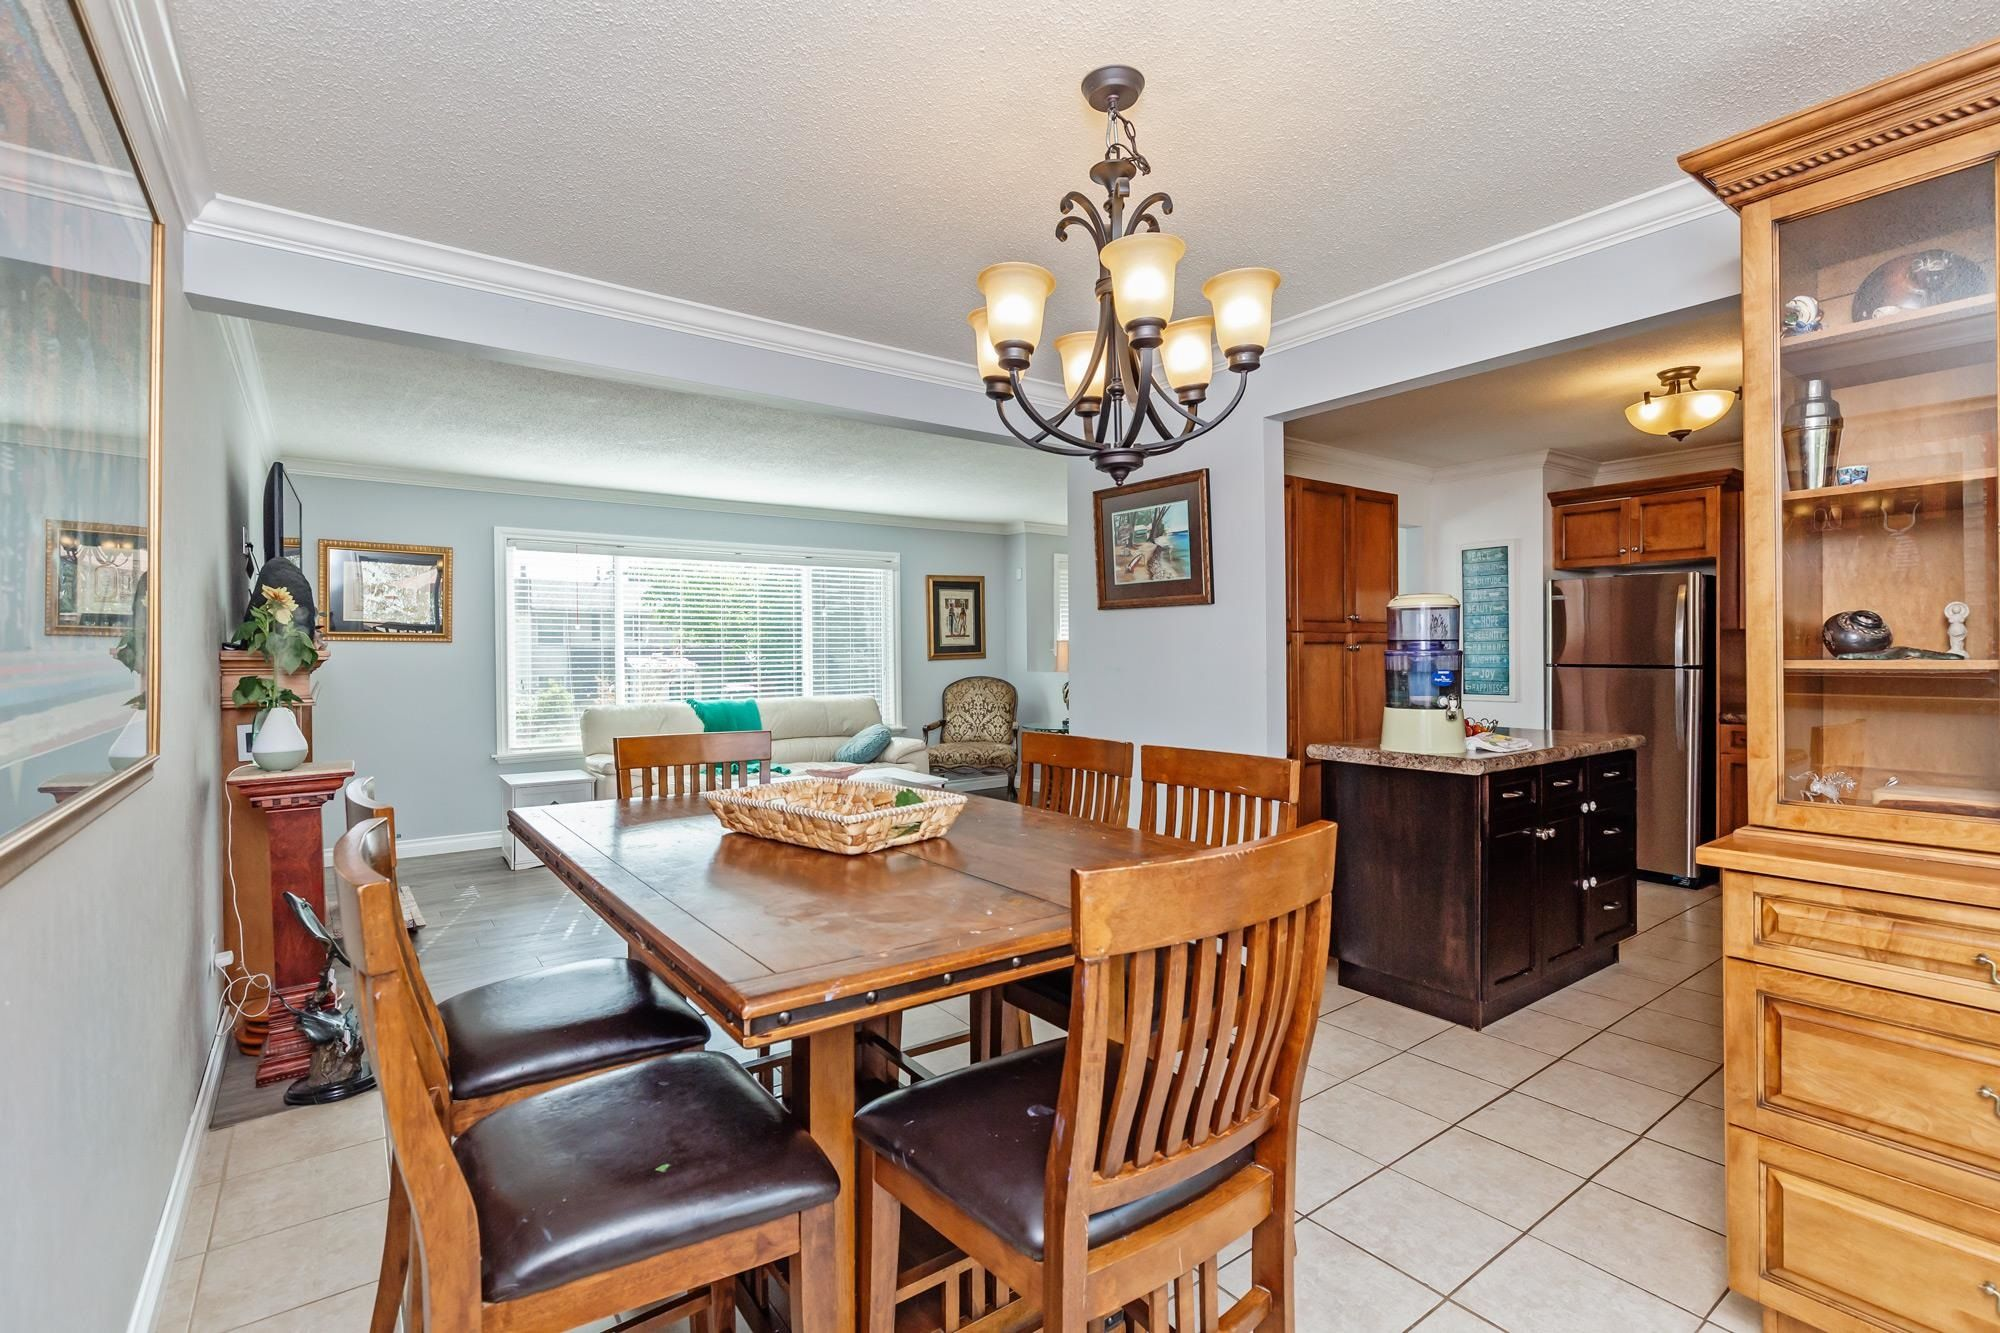 Photo 7: Photos: 32319 ATWATER Crescent in Abbotsford: Abbotsford West House for sale : MLS®# R2609136